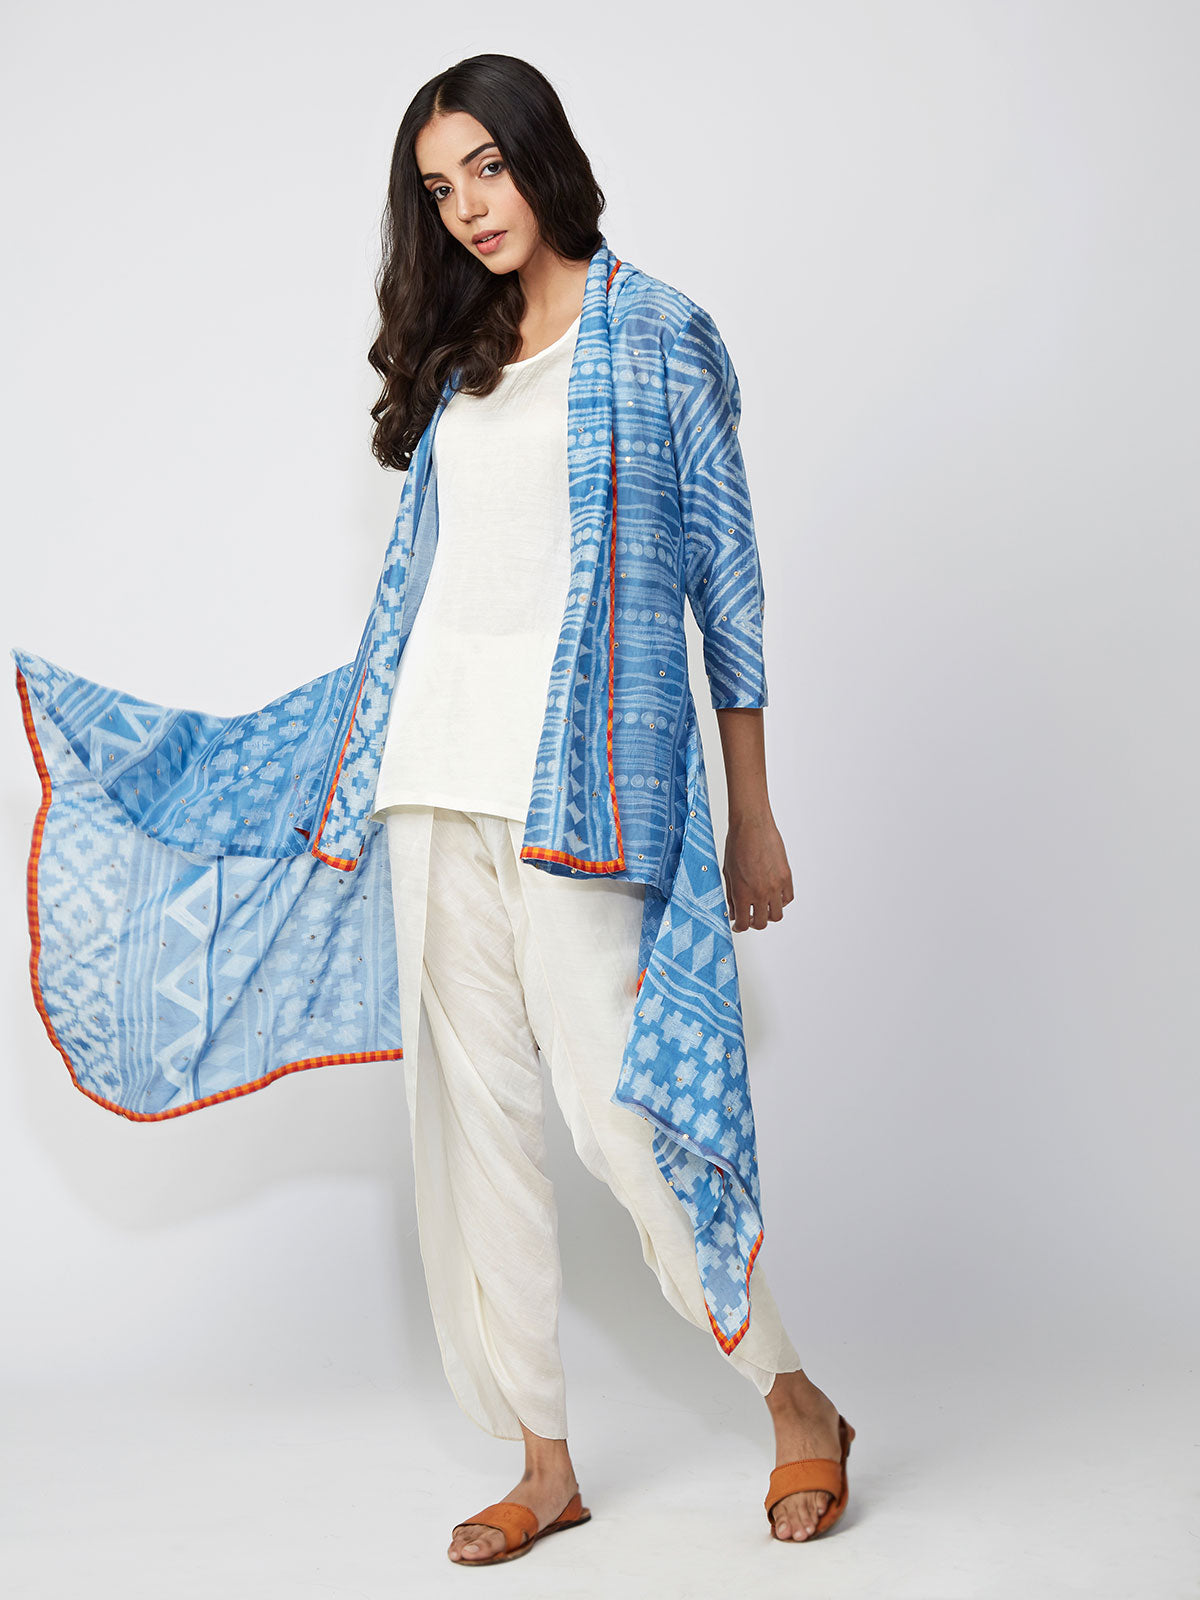 Jacket, capes, indianwear, modern indianwear, contemporary, dhoti pants, shibori, summerstyle